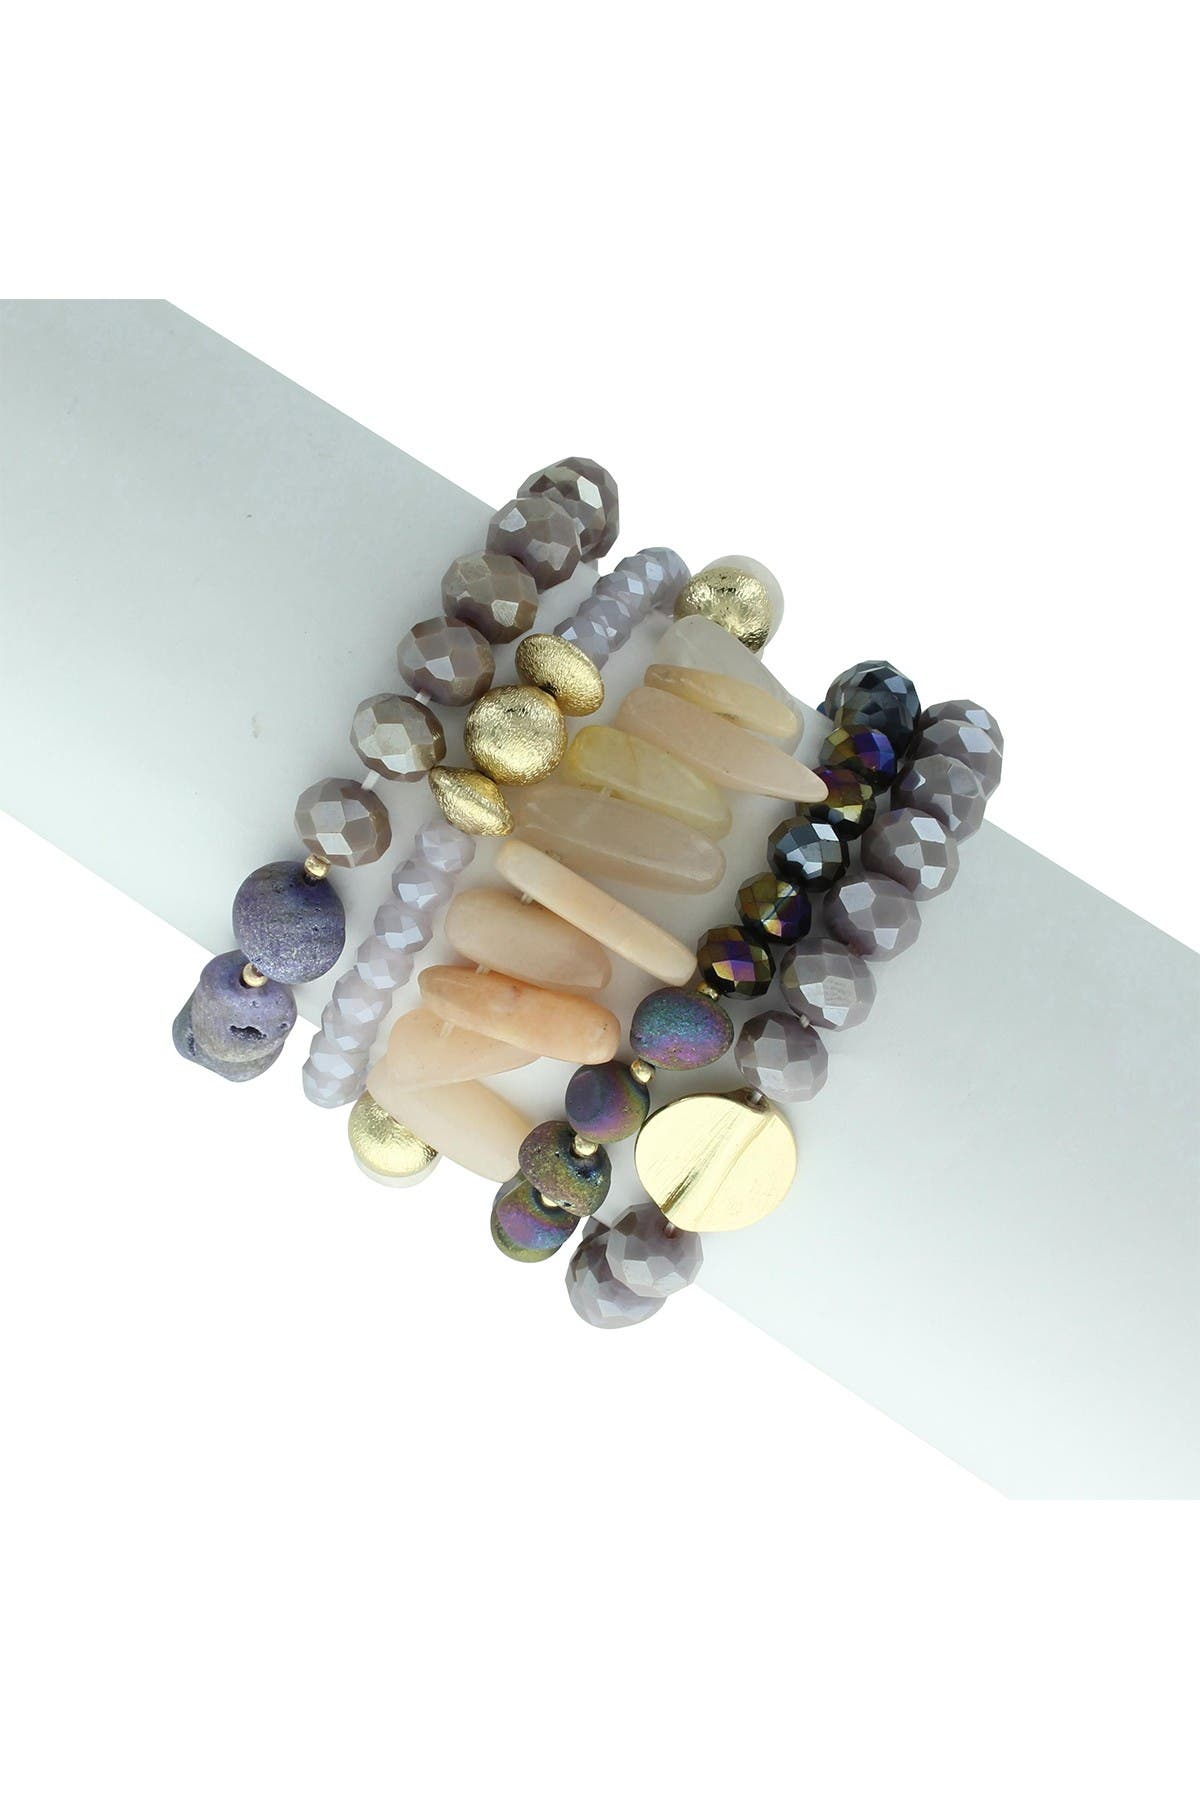 Image of Olivia Welles Kacy Bead & Stone Stretch Bracelet Set - Set of 5